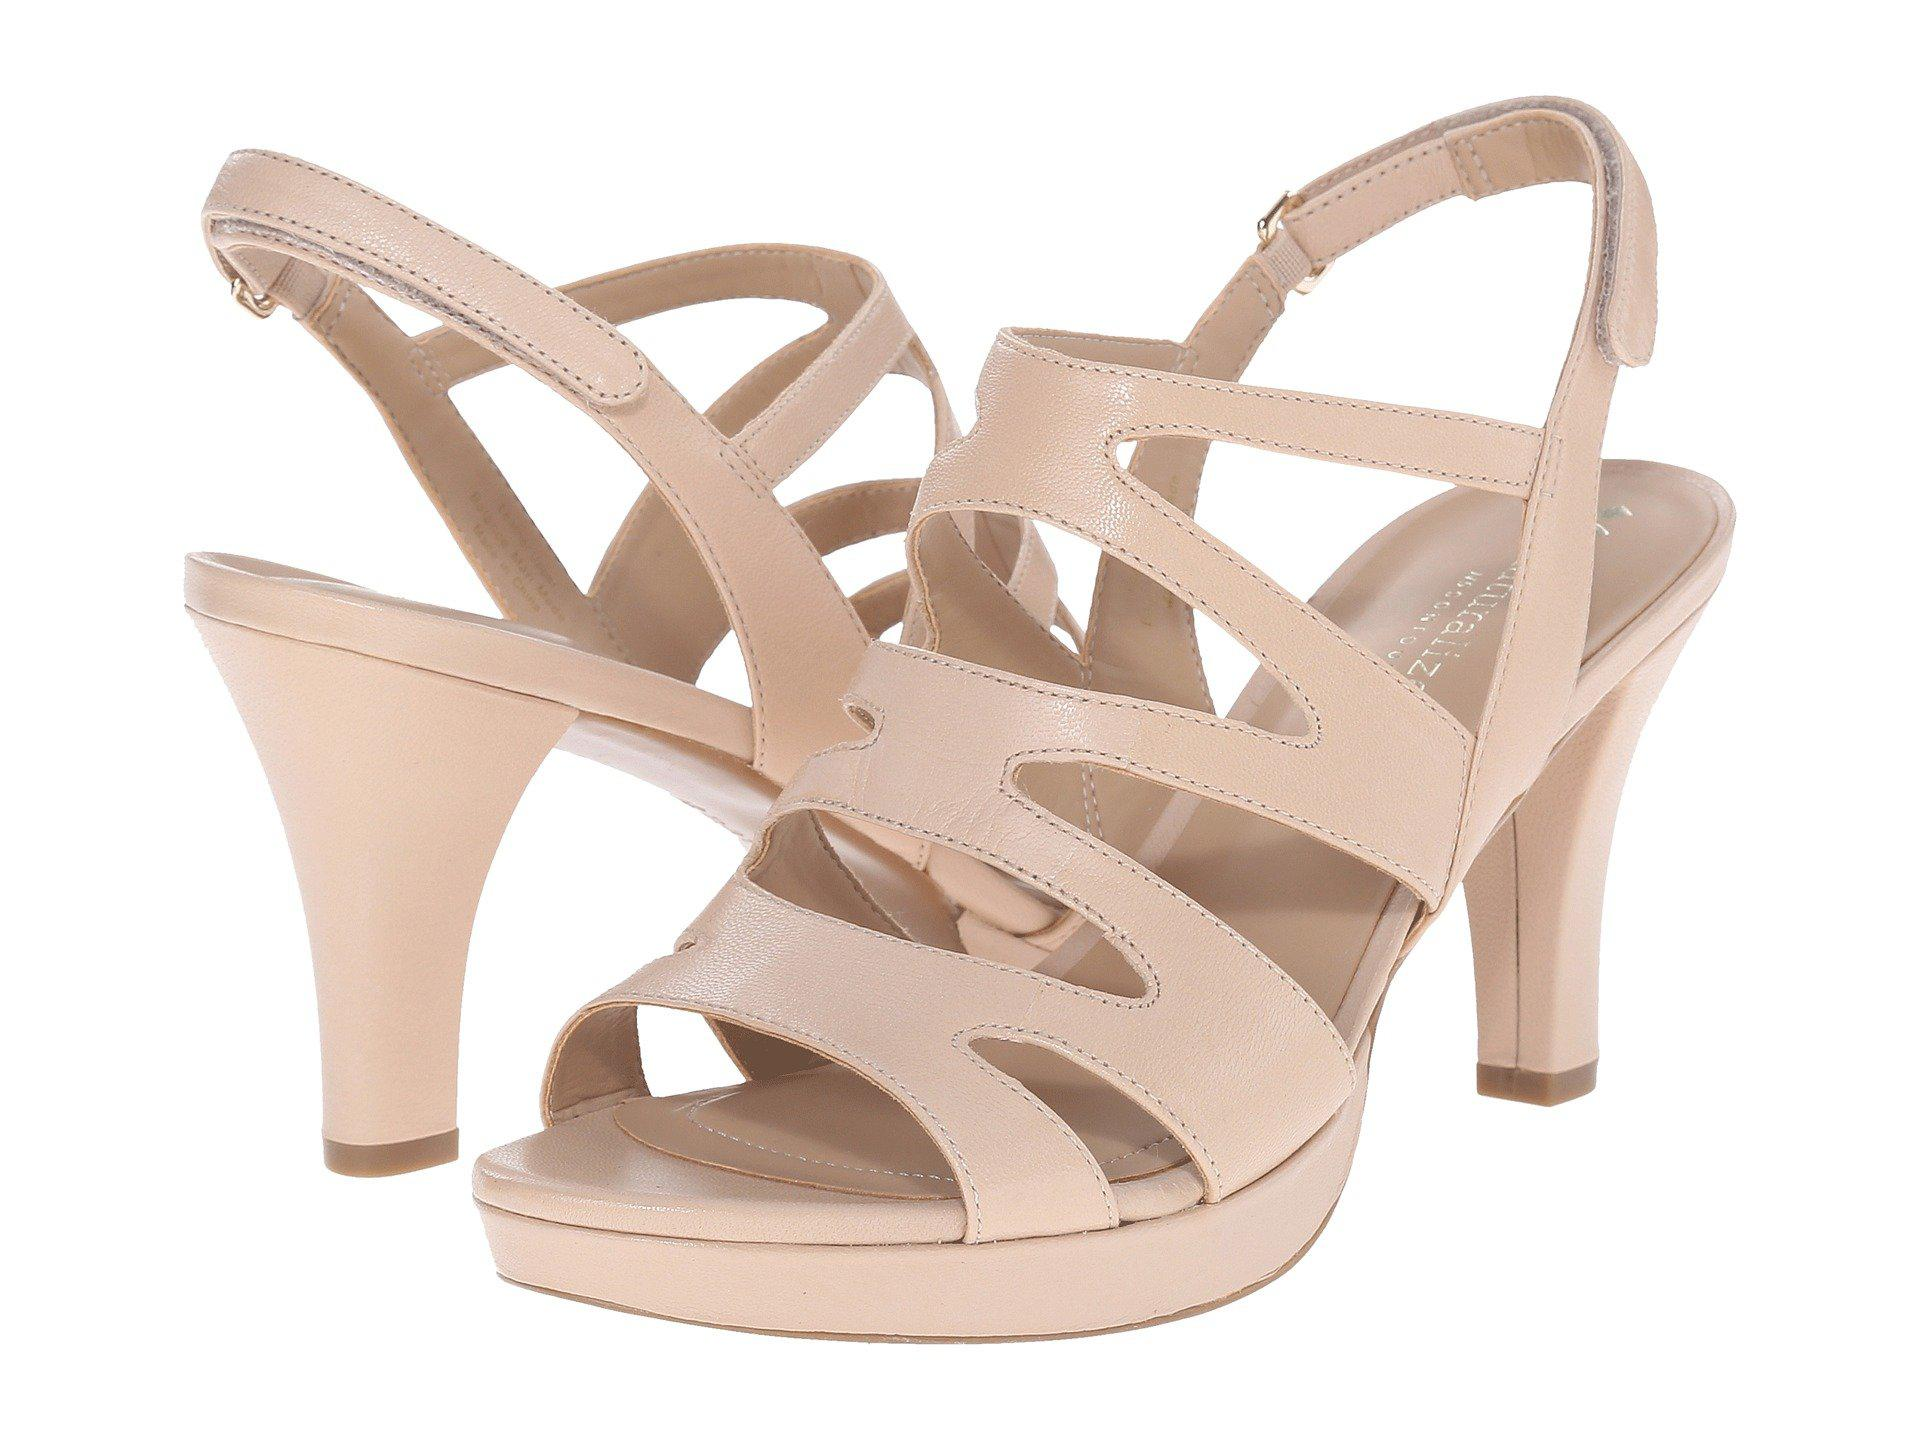 84e00ad077d9 Lyst - Naturalizer Pressley (taupe Leather) High Heels in Brown